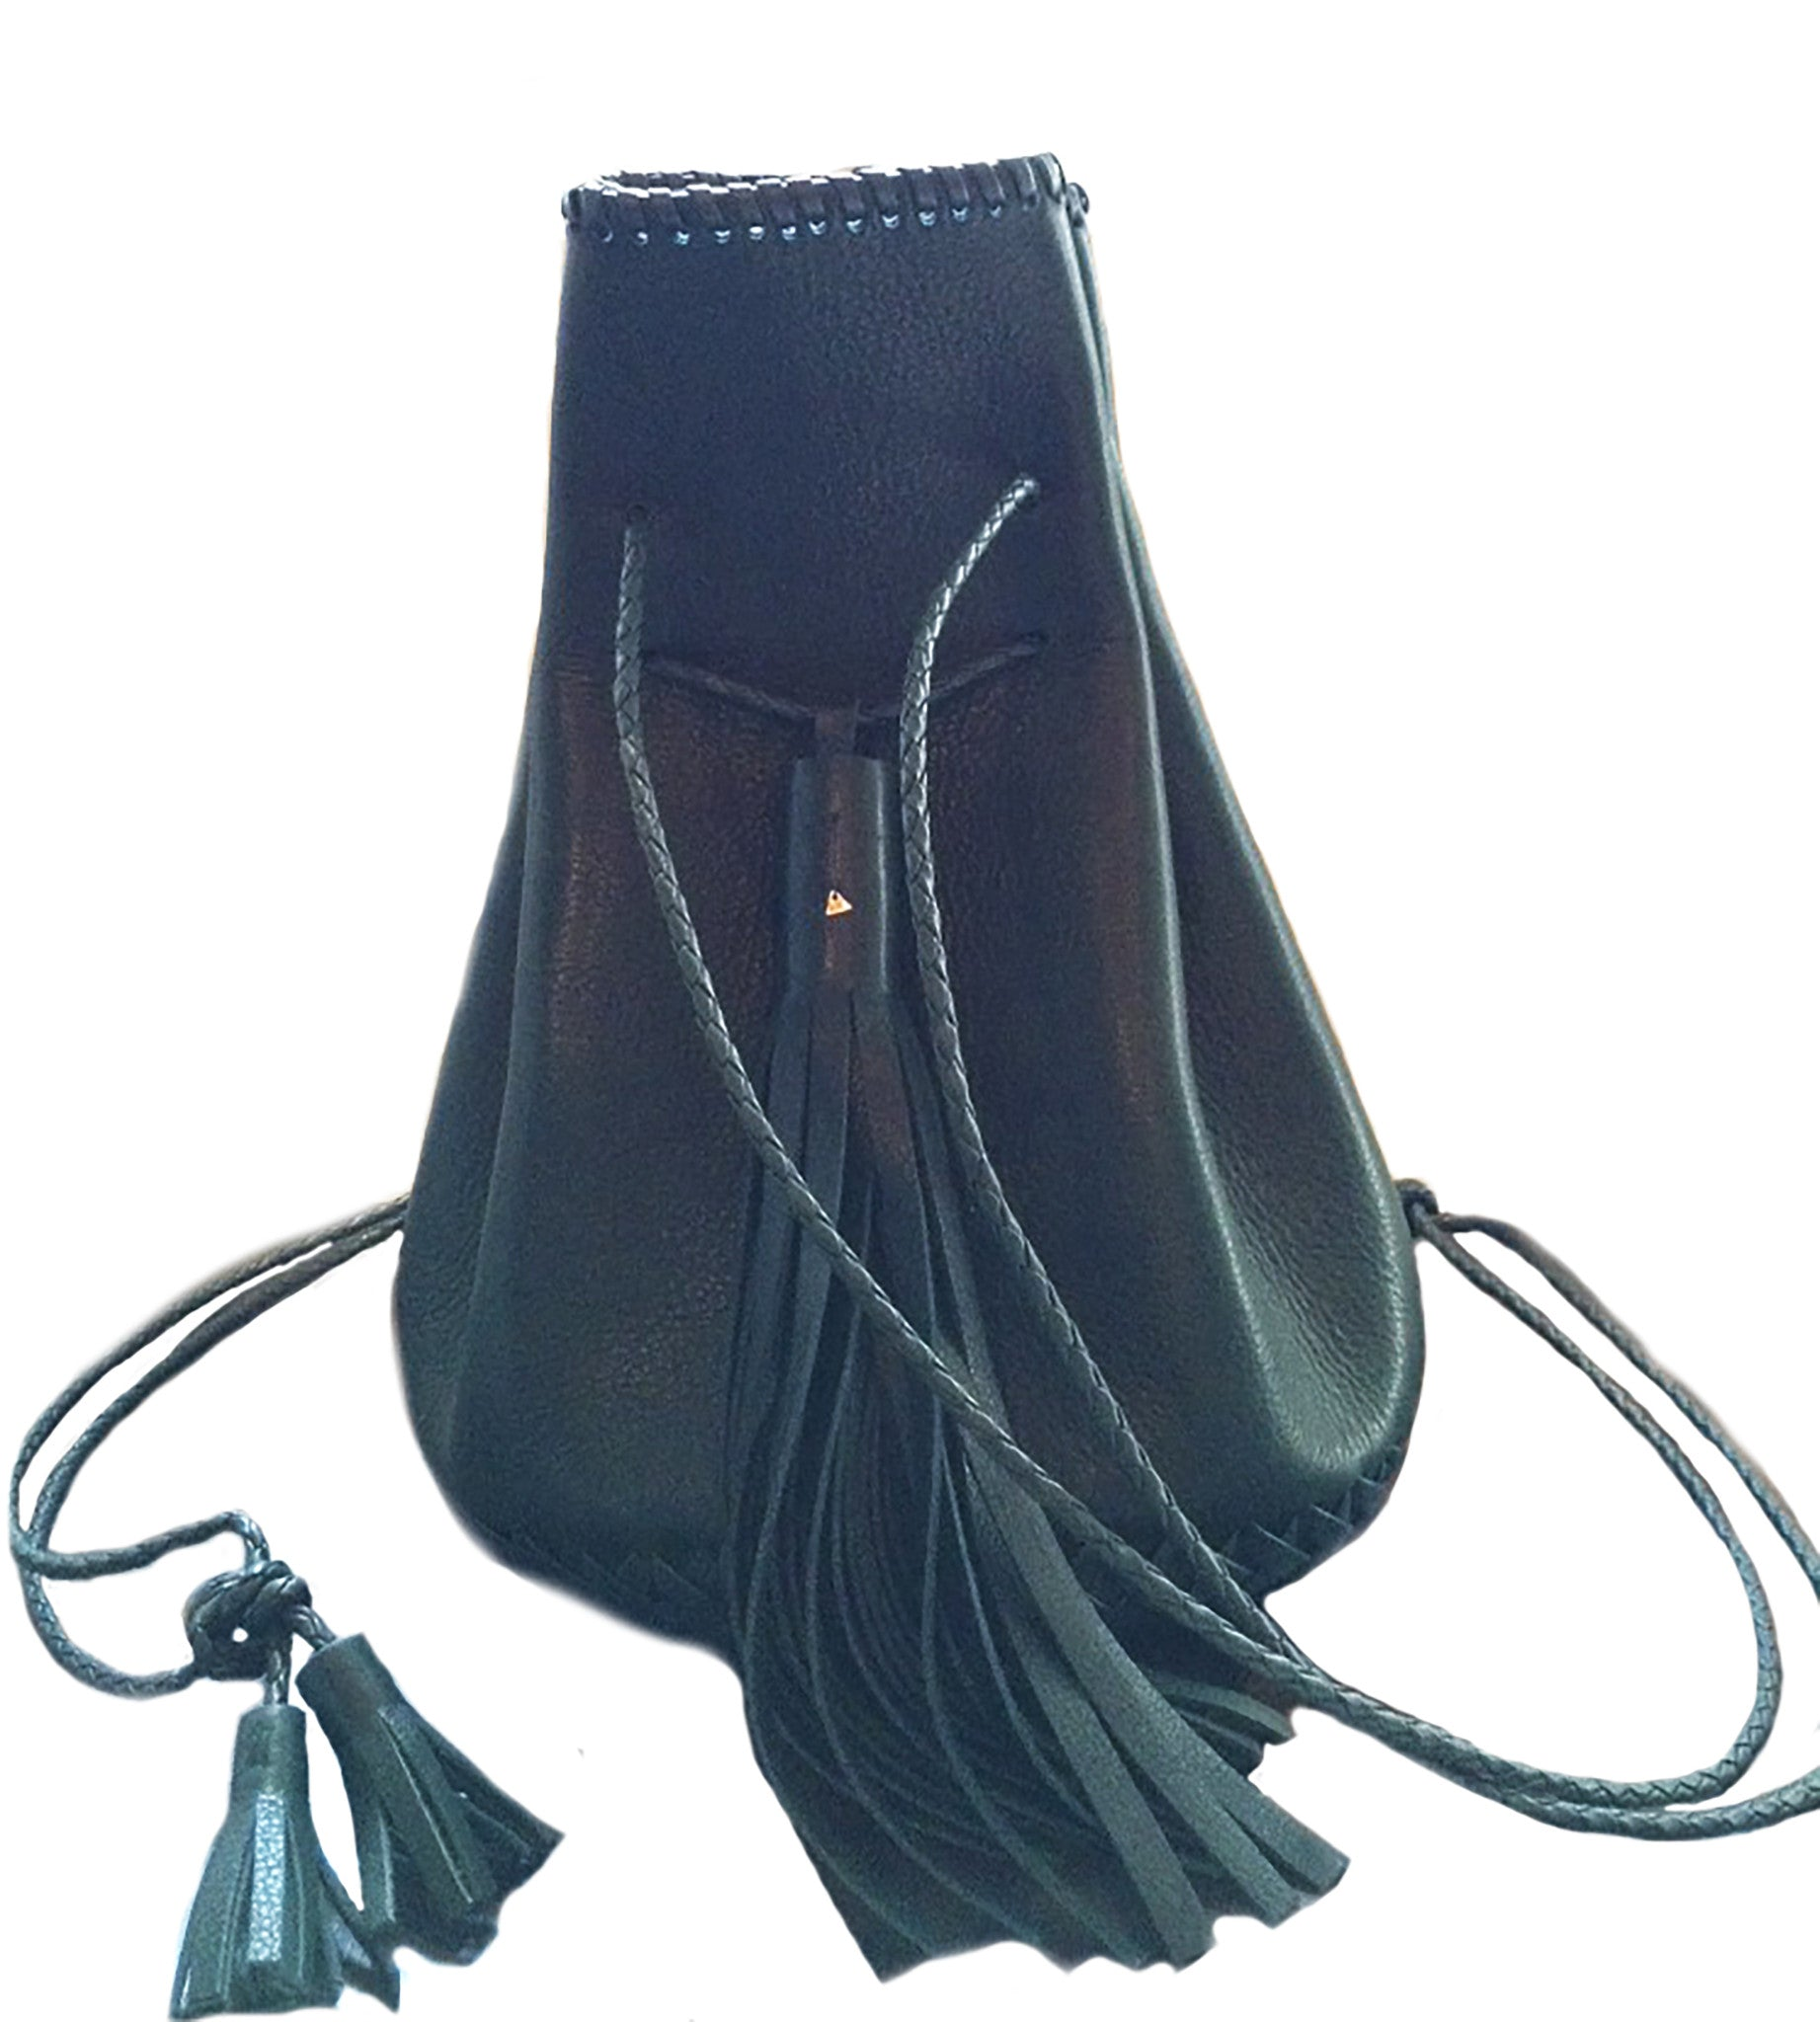 Eco Dark Green Forest Leather Bullet Bag Wendy Nichol Leather Handbag Purse Designer  Bucket Bag